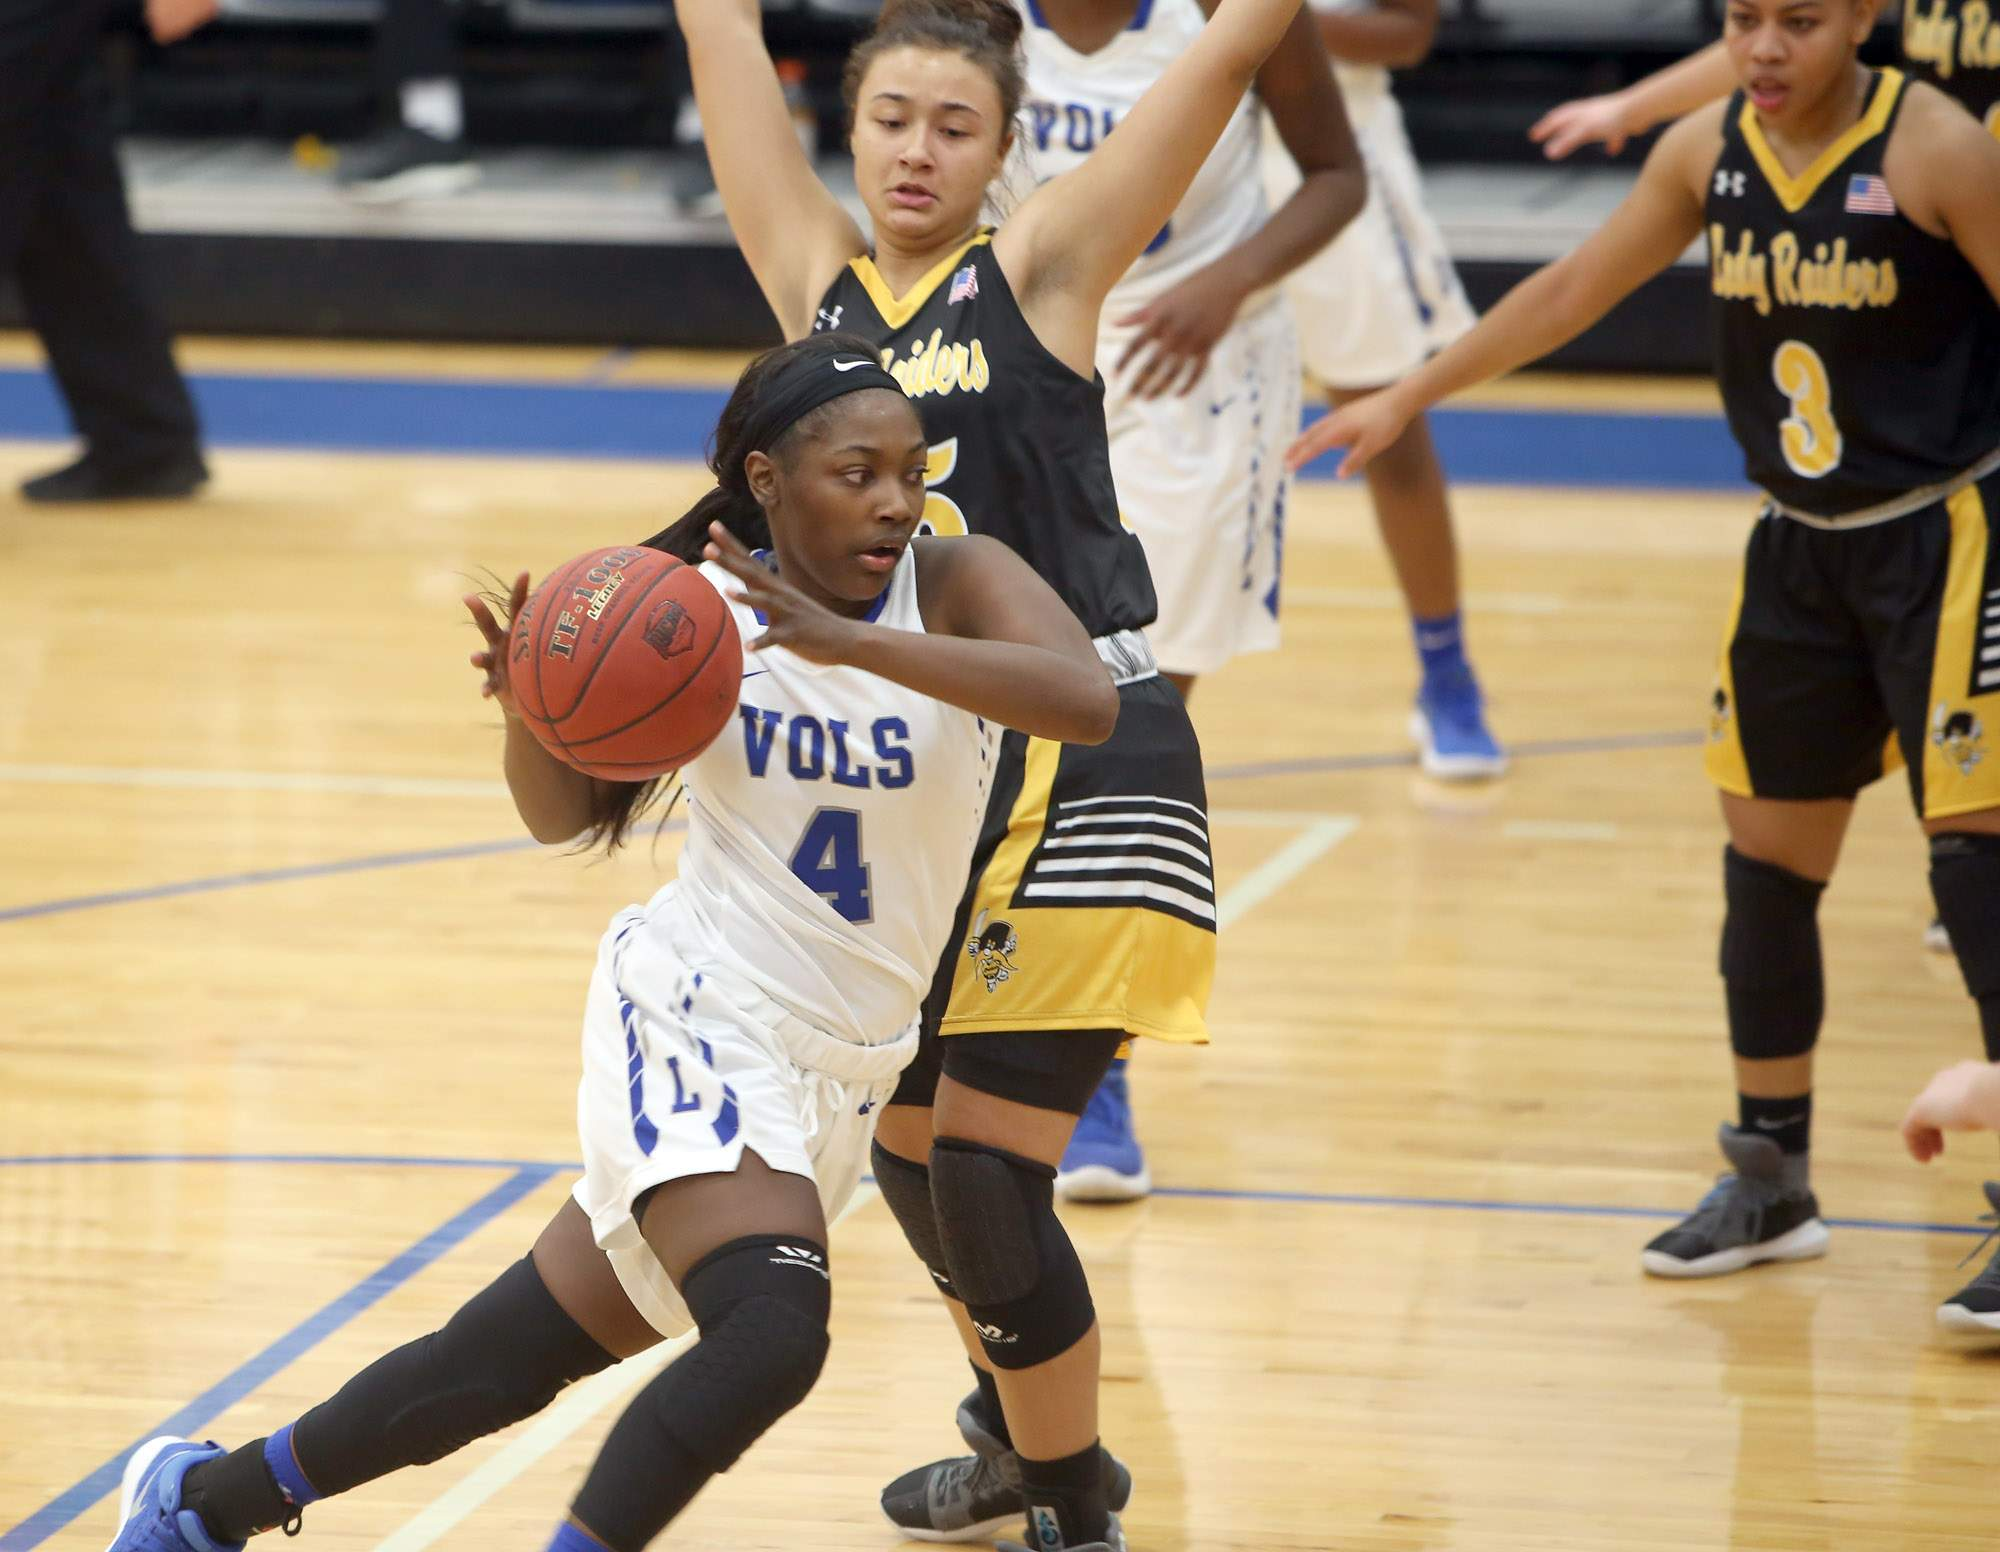 Shaniya Whitsell drives the lane.